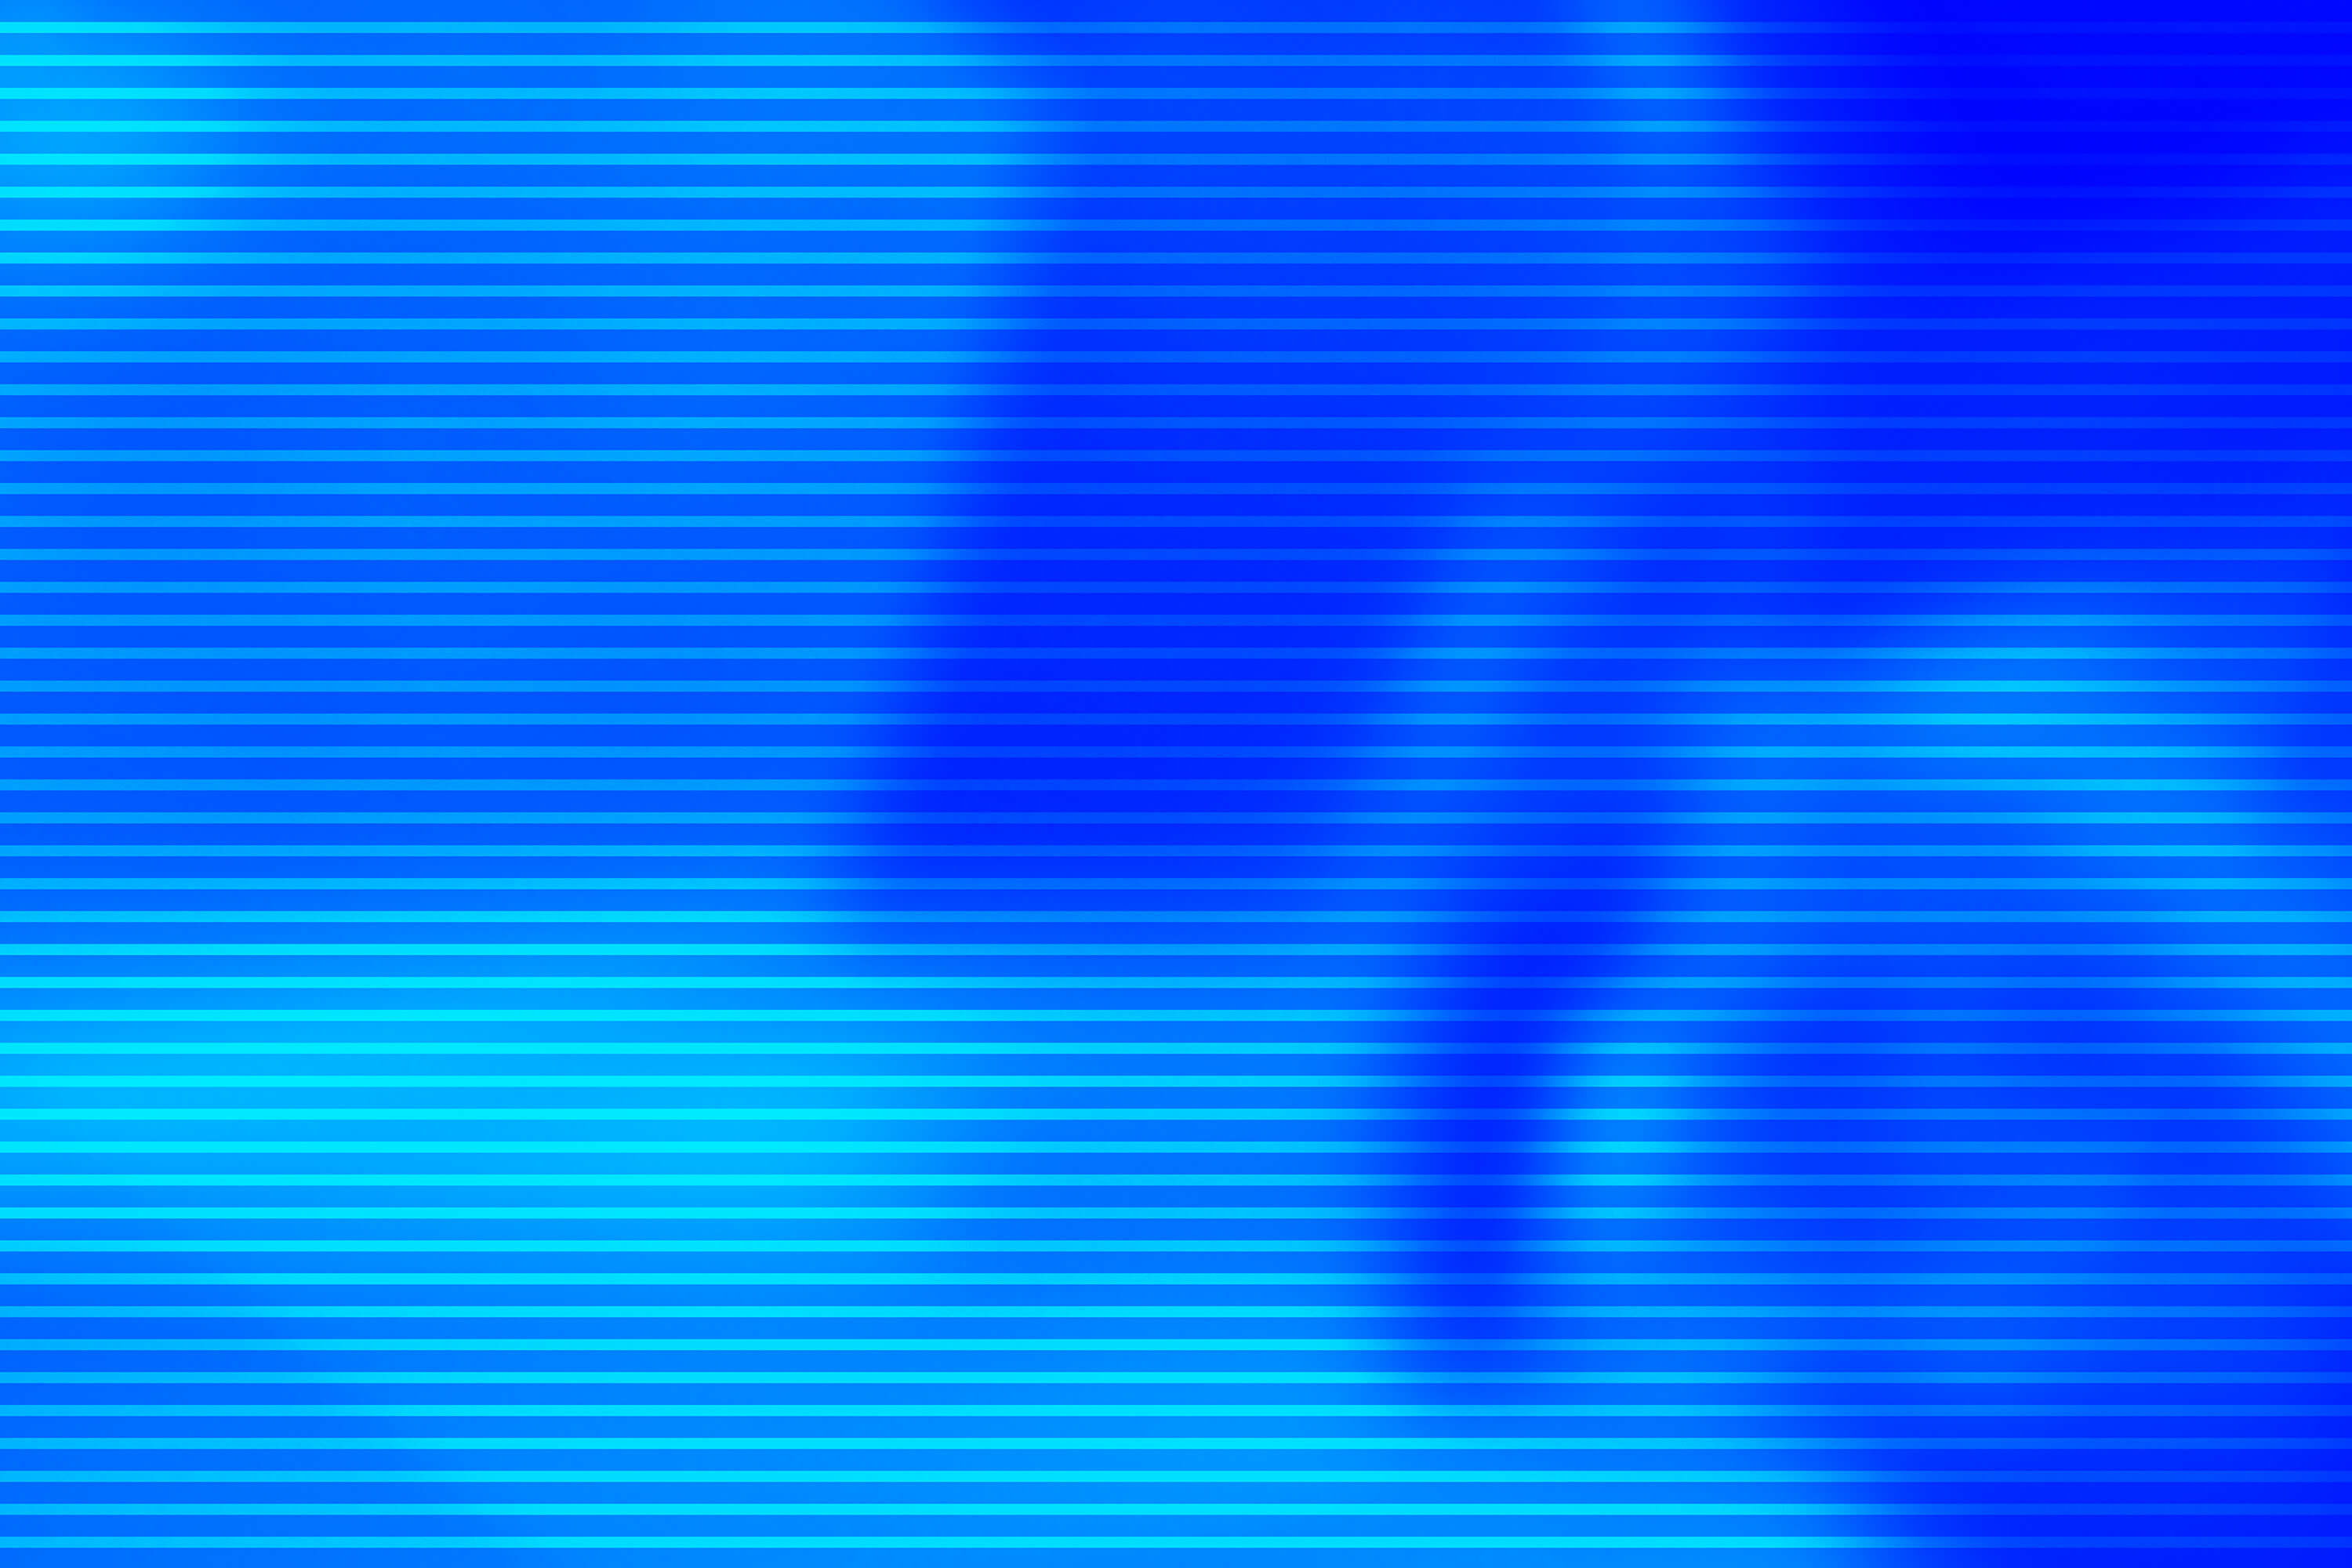 A blue colour field shows slight abstract contours.